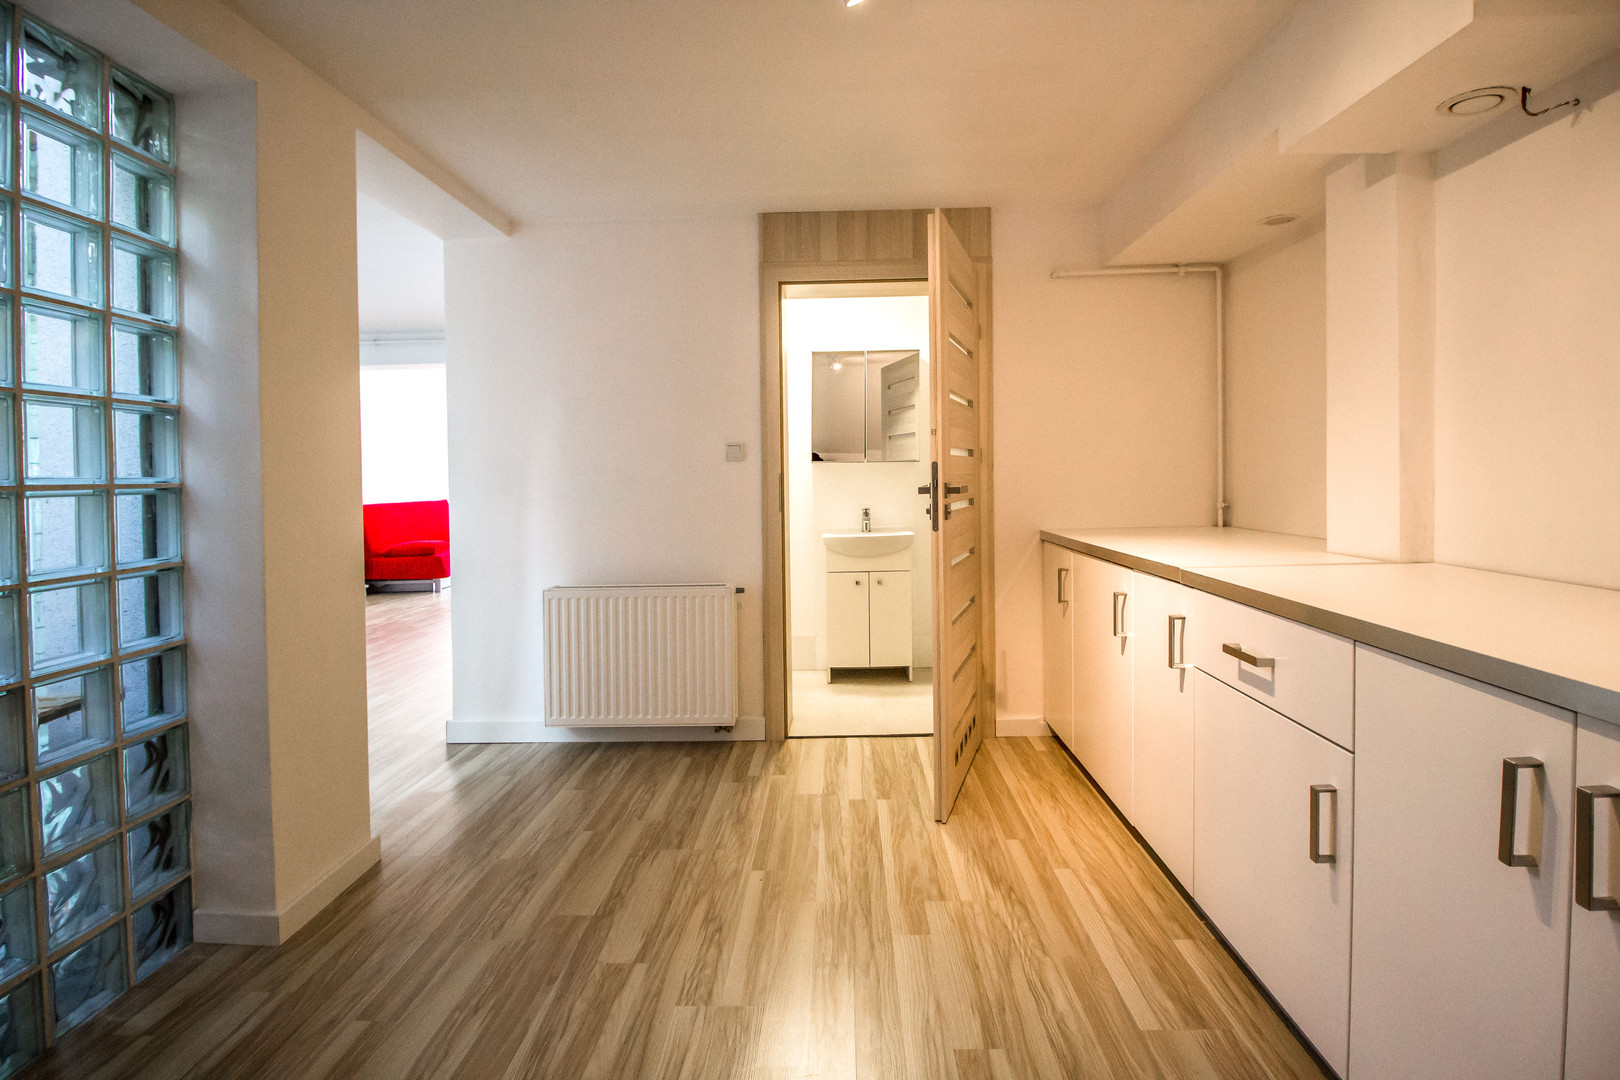 House for rent Poznan Poland (8 of 31).j